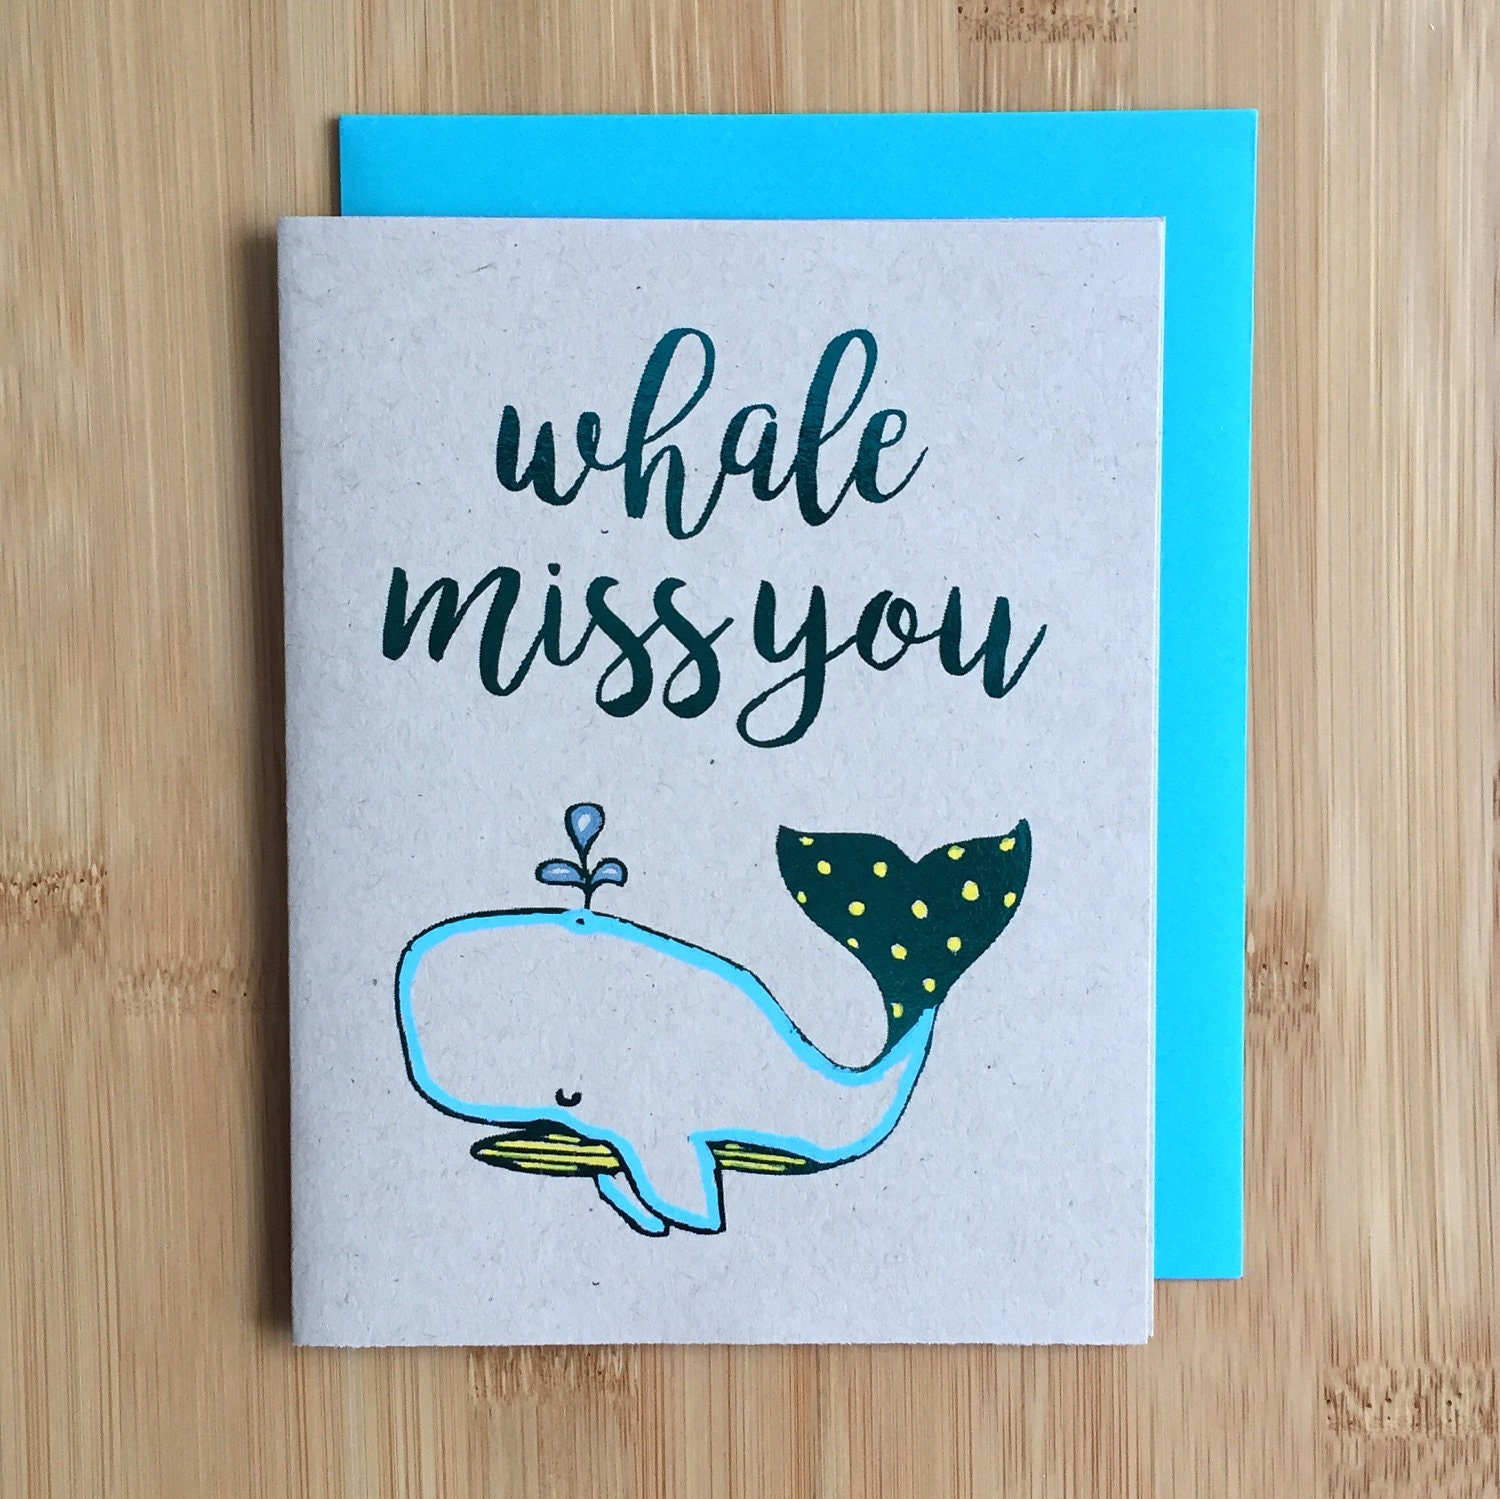 how to make a goodbye card for your friend